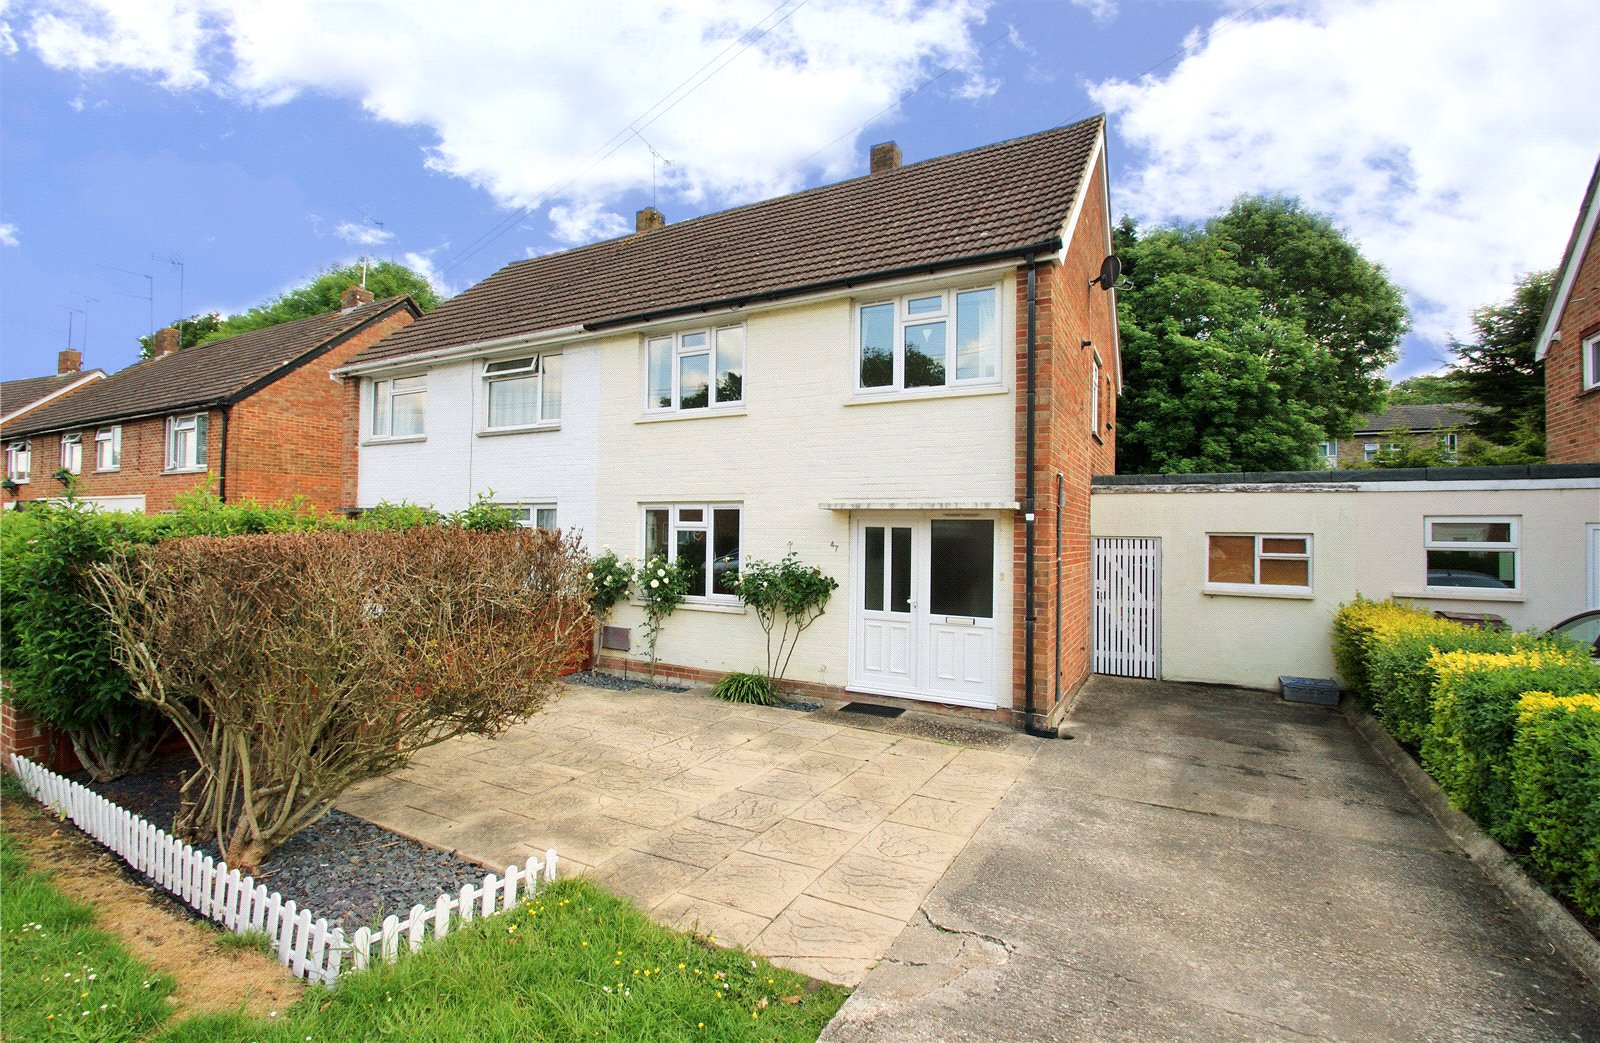 3 Bedrooms Semi Detached House for sale in Longs Way, Wokingham, Berkshire, RG40